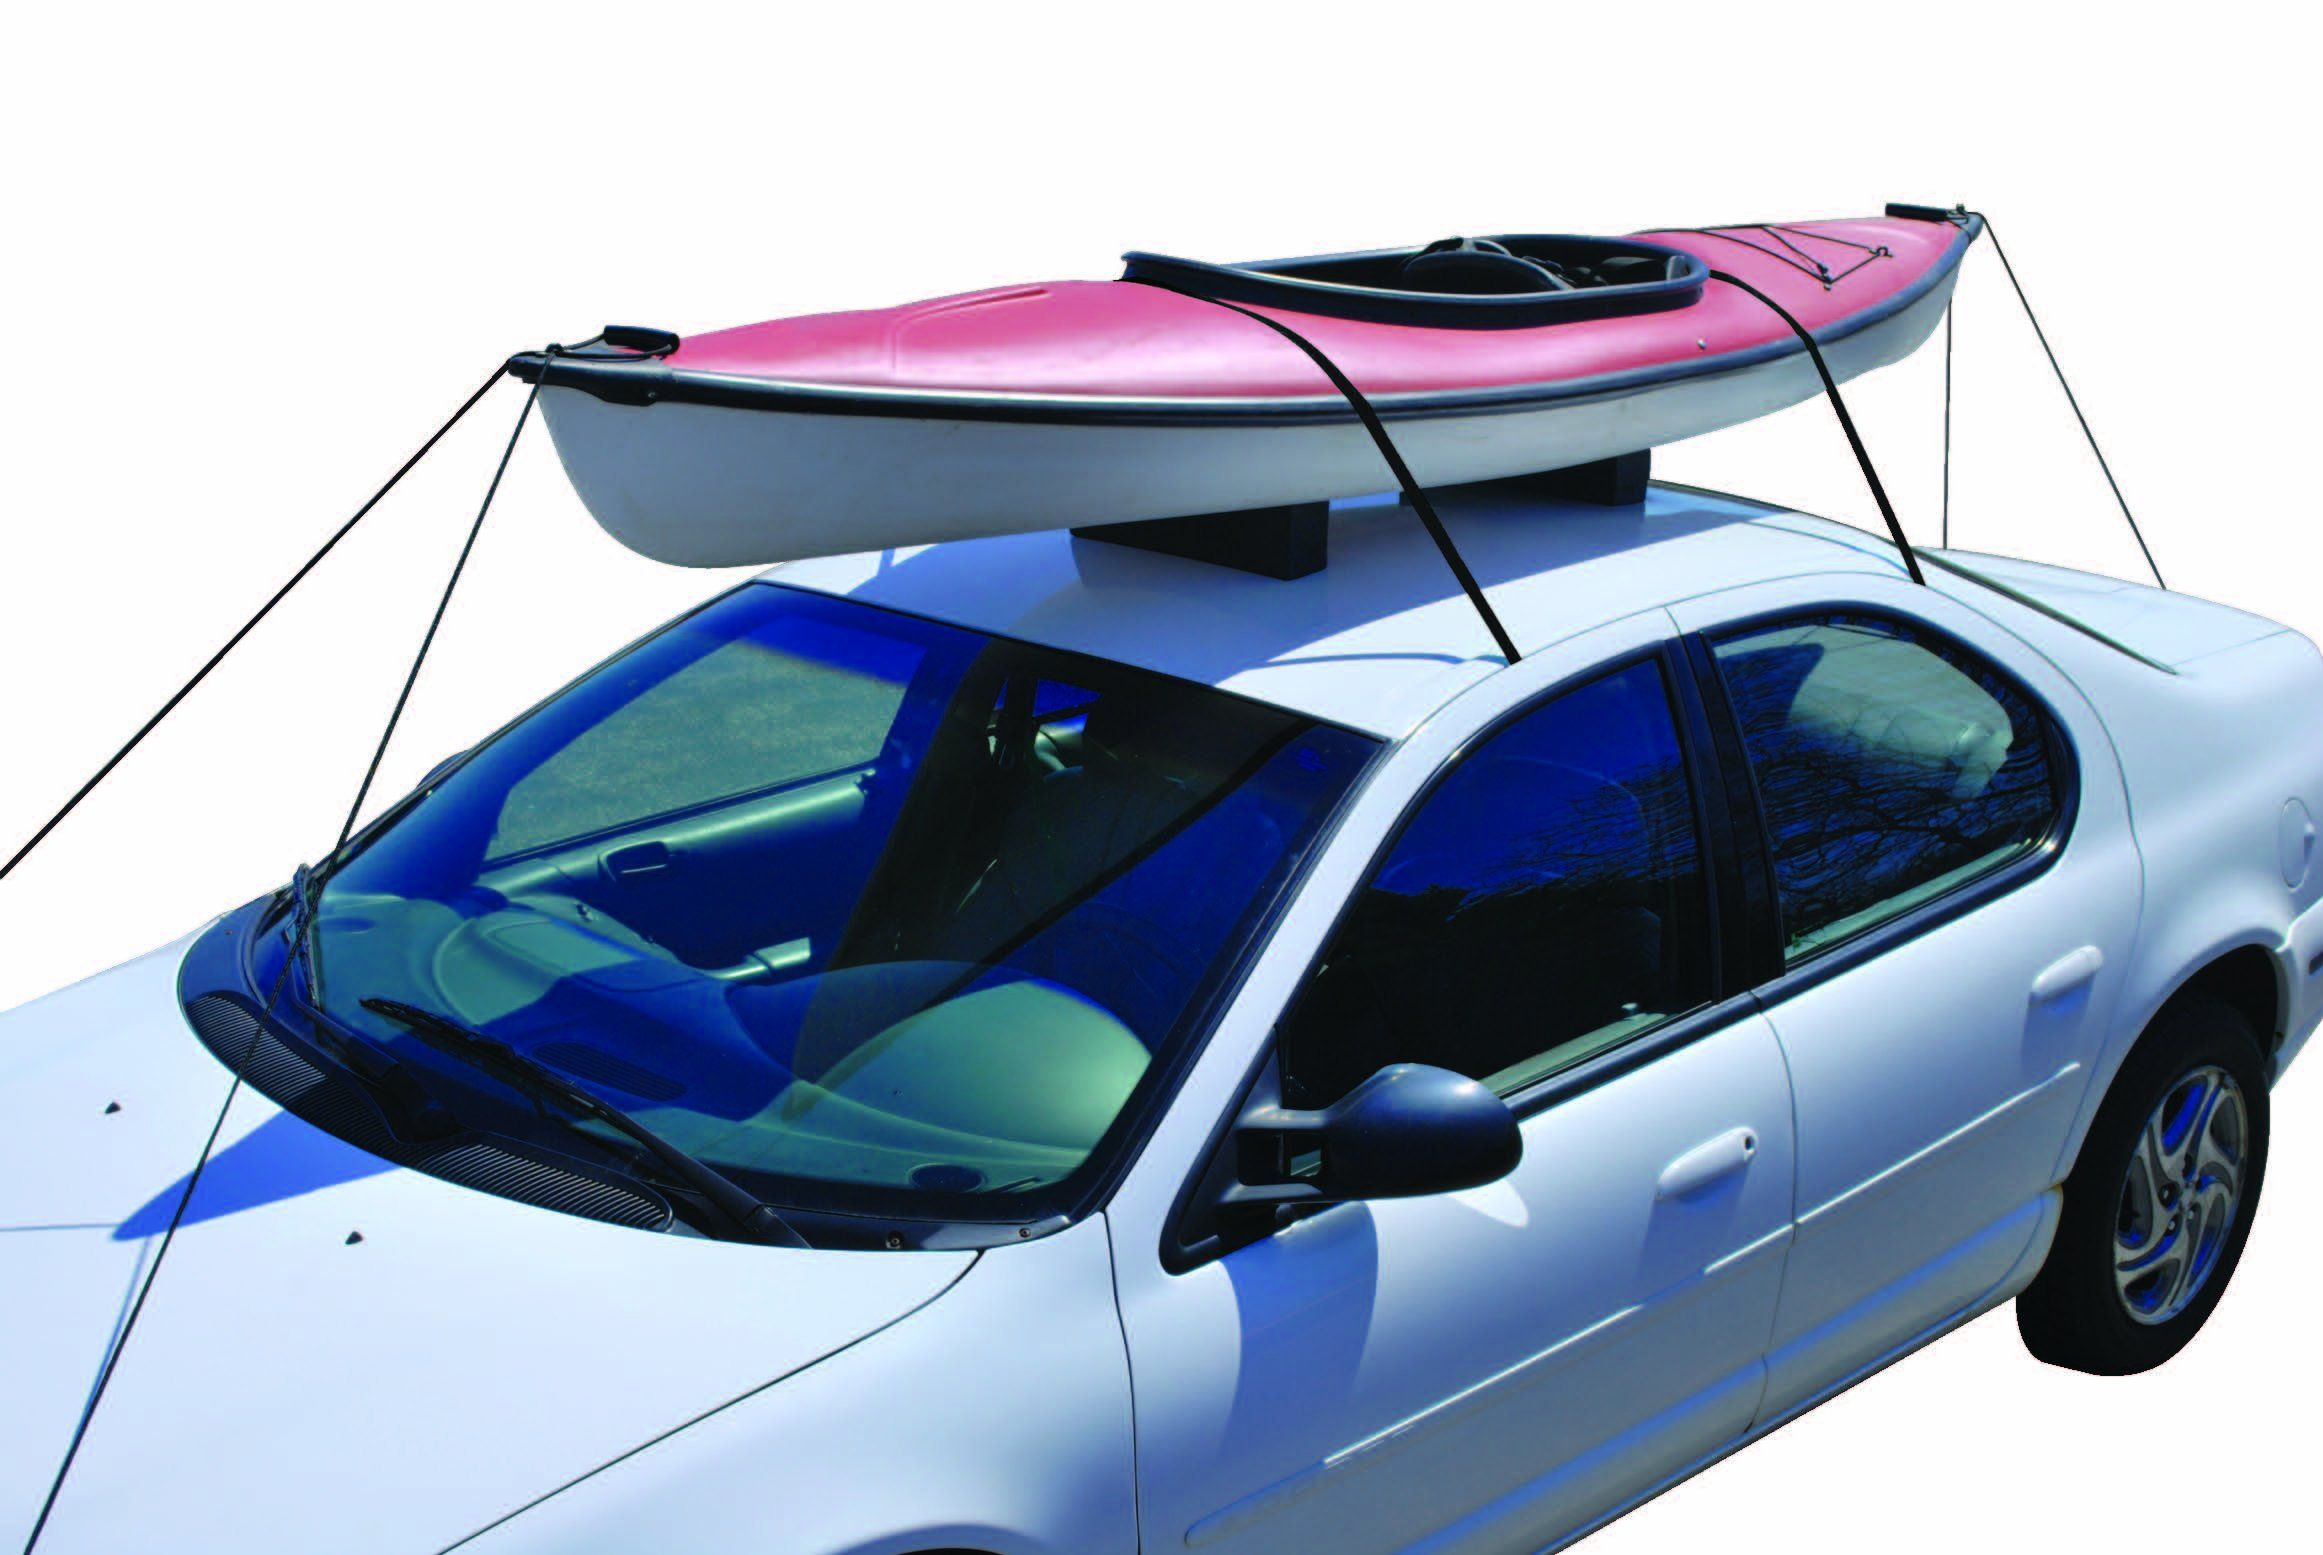 Car Top Kayak Carrier Kit To Carry Your Boat On An Auto Roof On